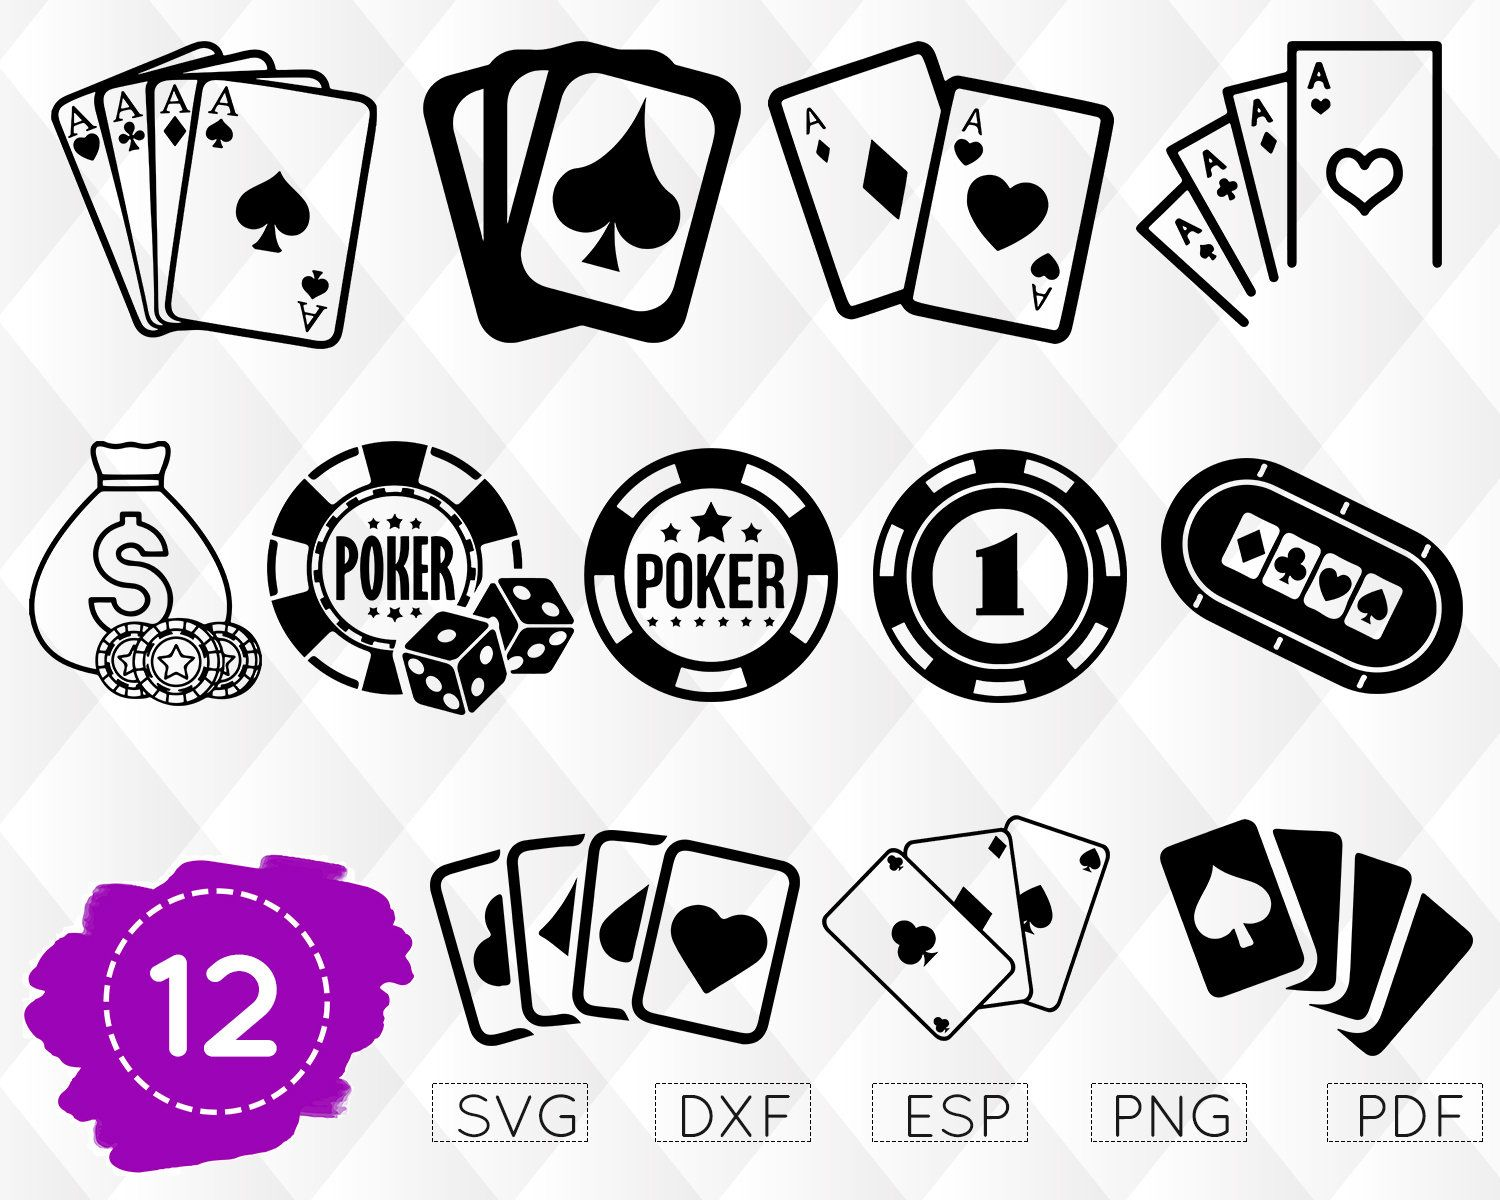 Poker clipart svg. Playing cards casino las